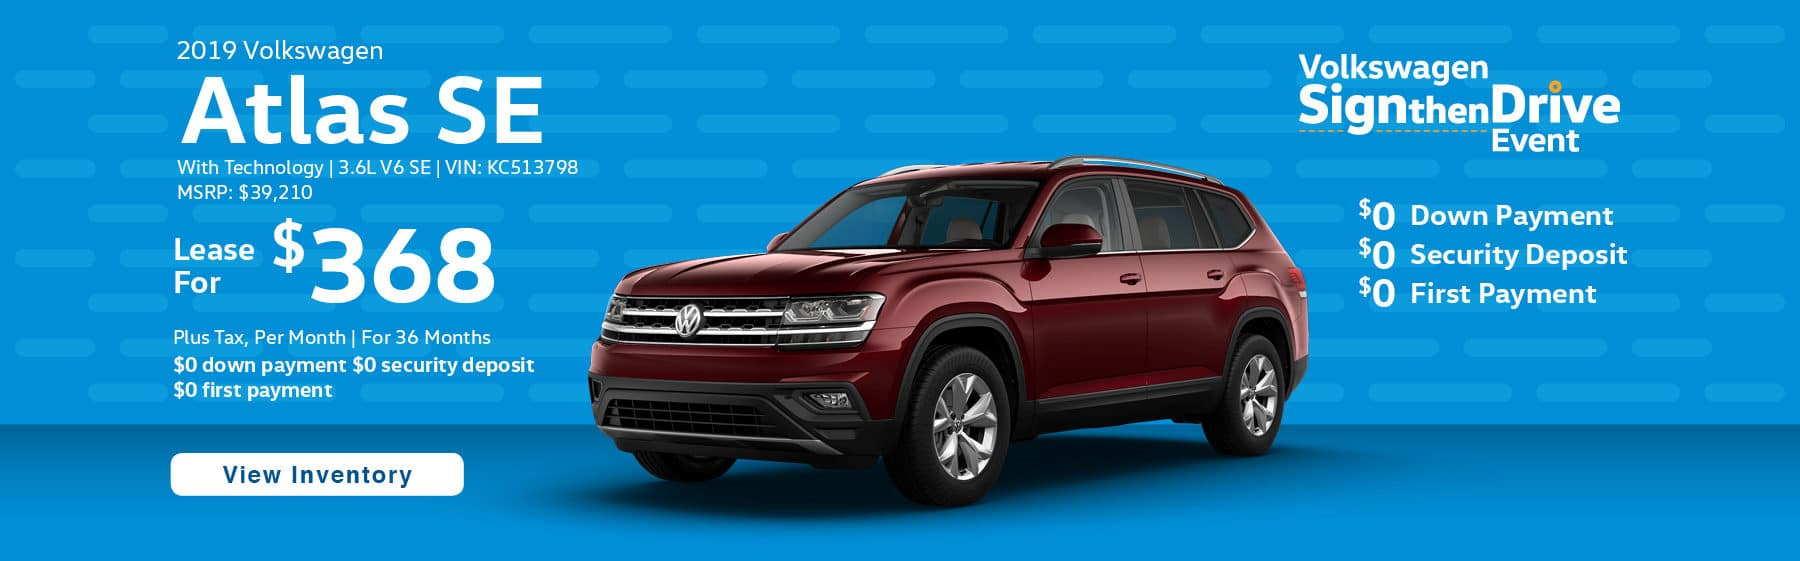 Lease the 2019 Volkswagen Atlas SE V6 for $368 plus tax for 36 months. $0 Down payment required.